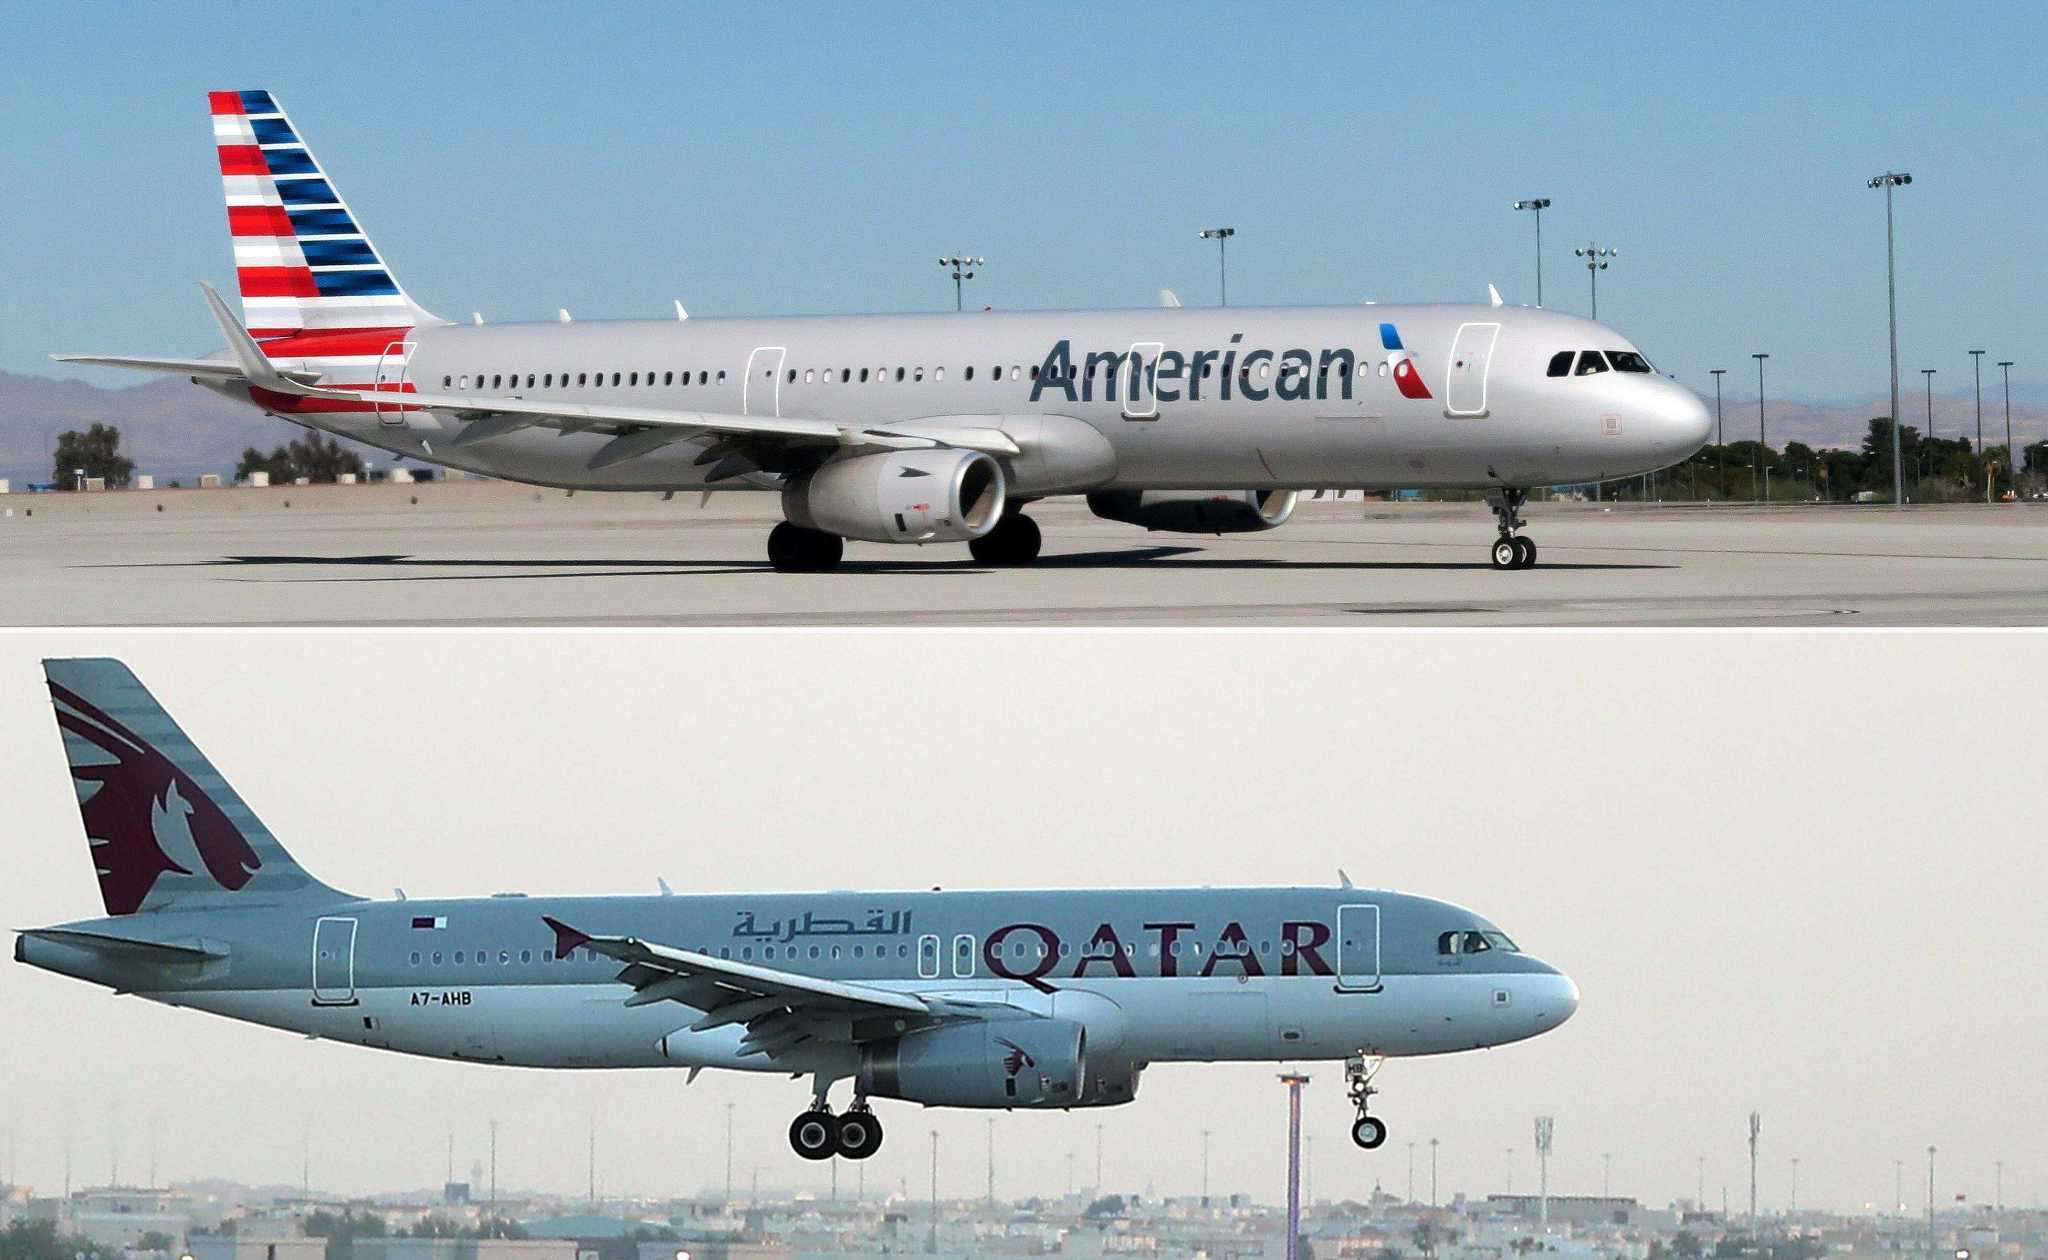 American and Qatar Airlines Rekindle Their Codeshare Agreement